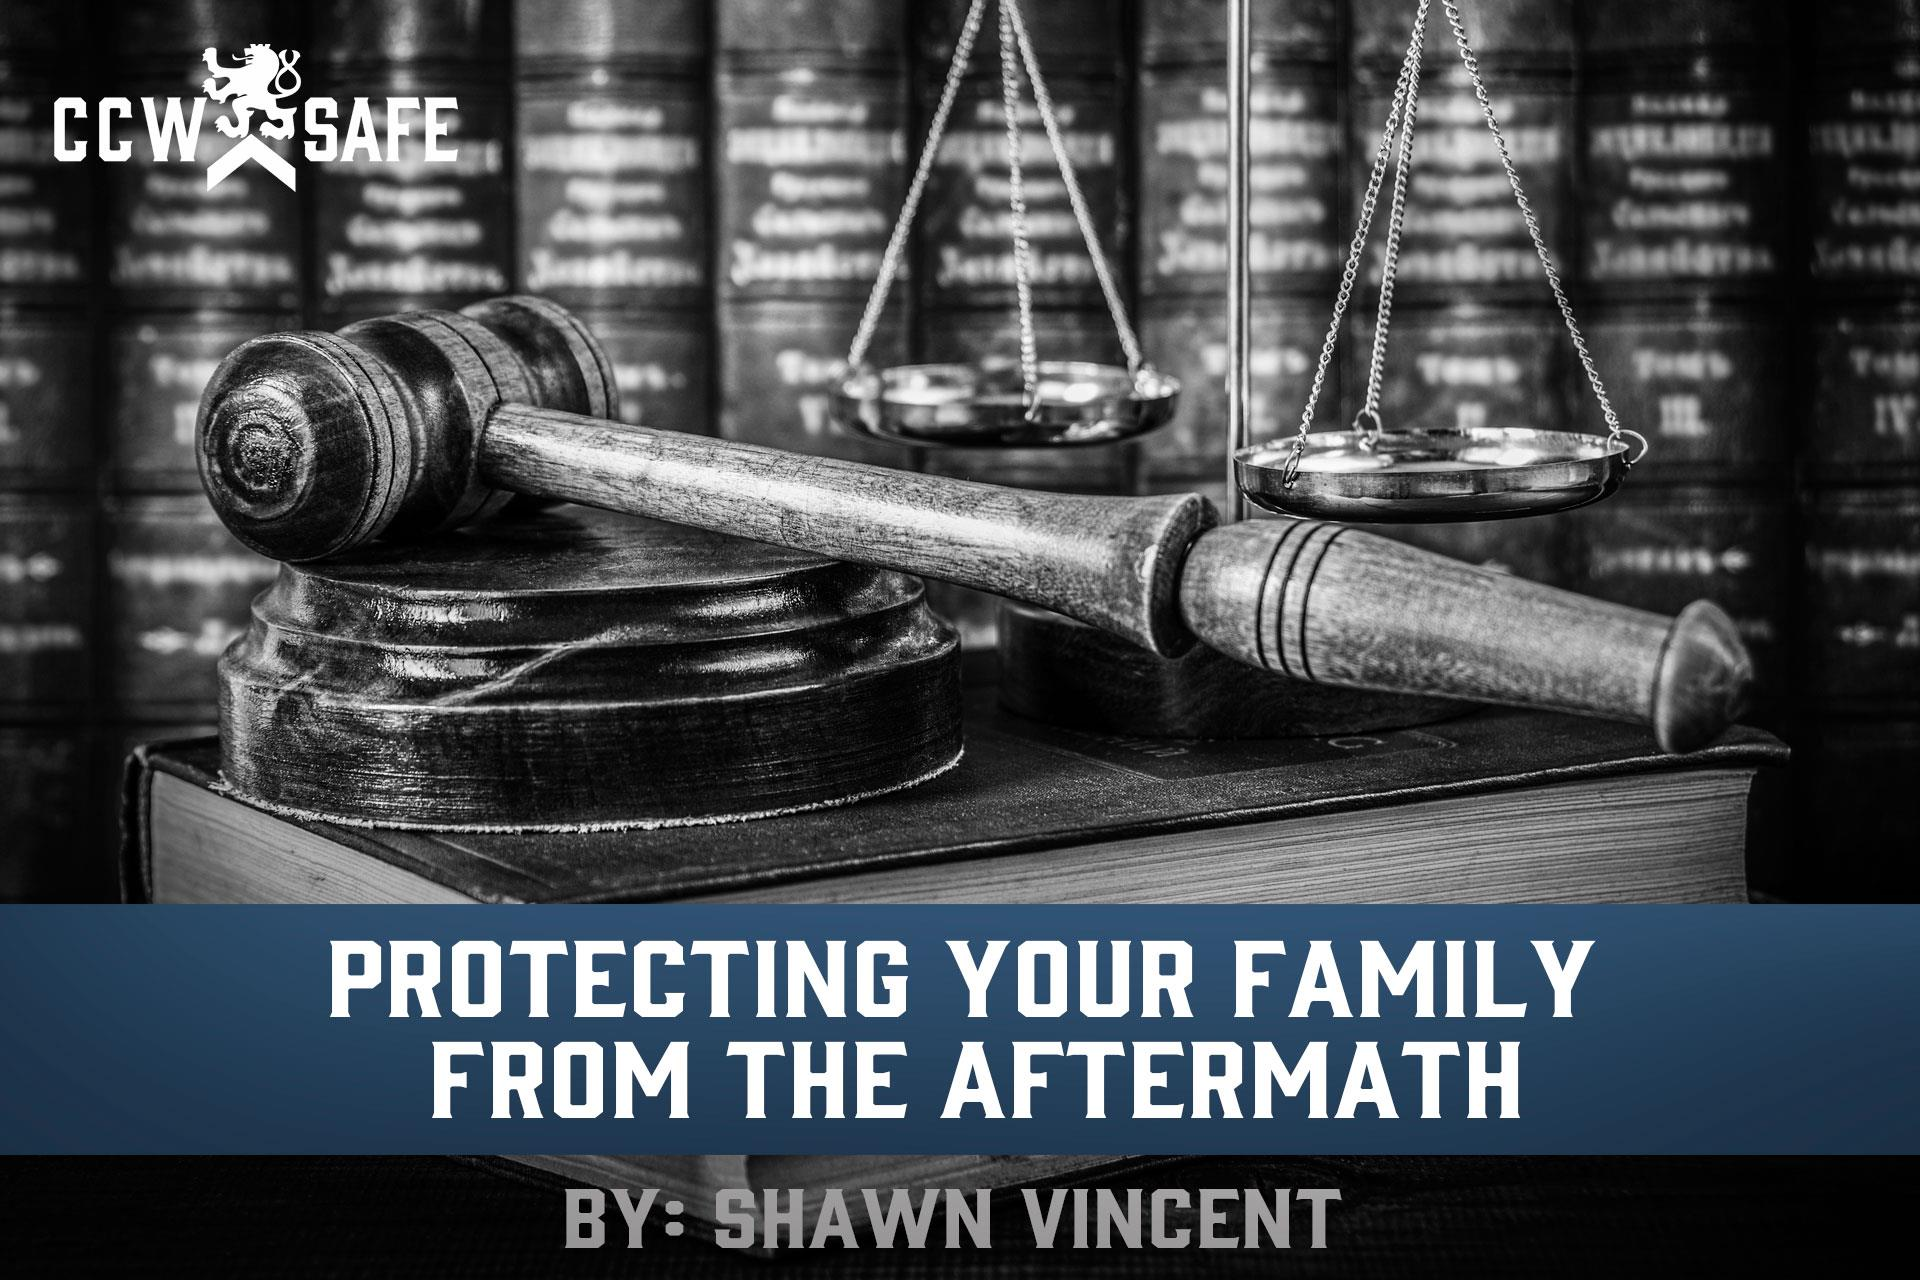 Protecting Your Family From The Aftermath